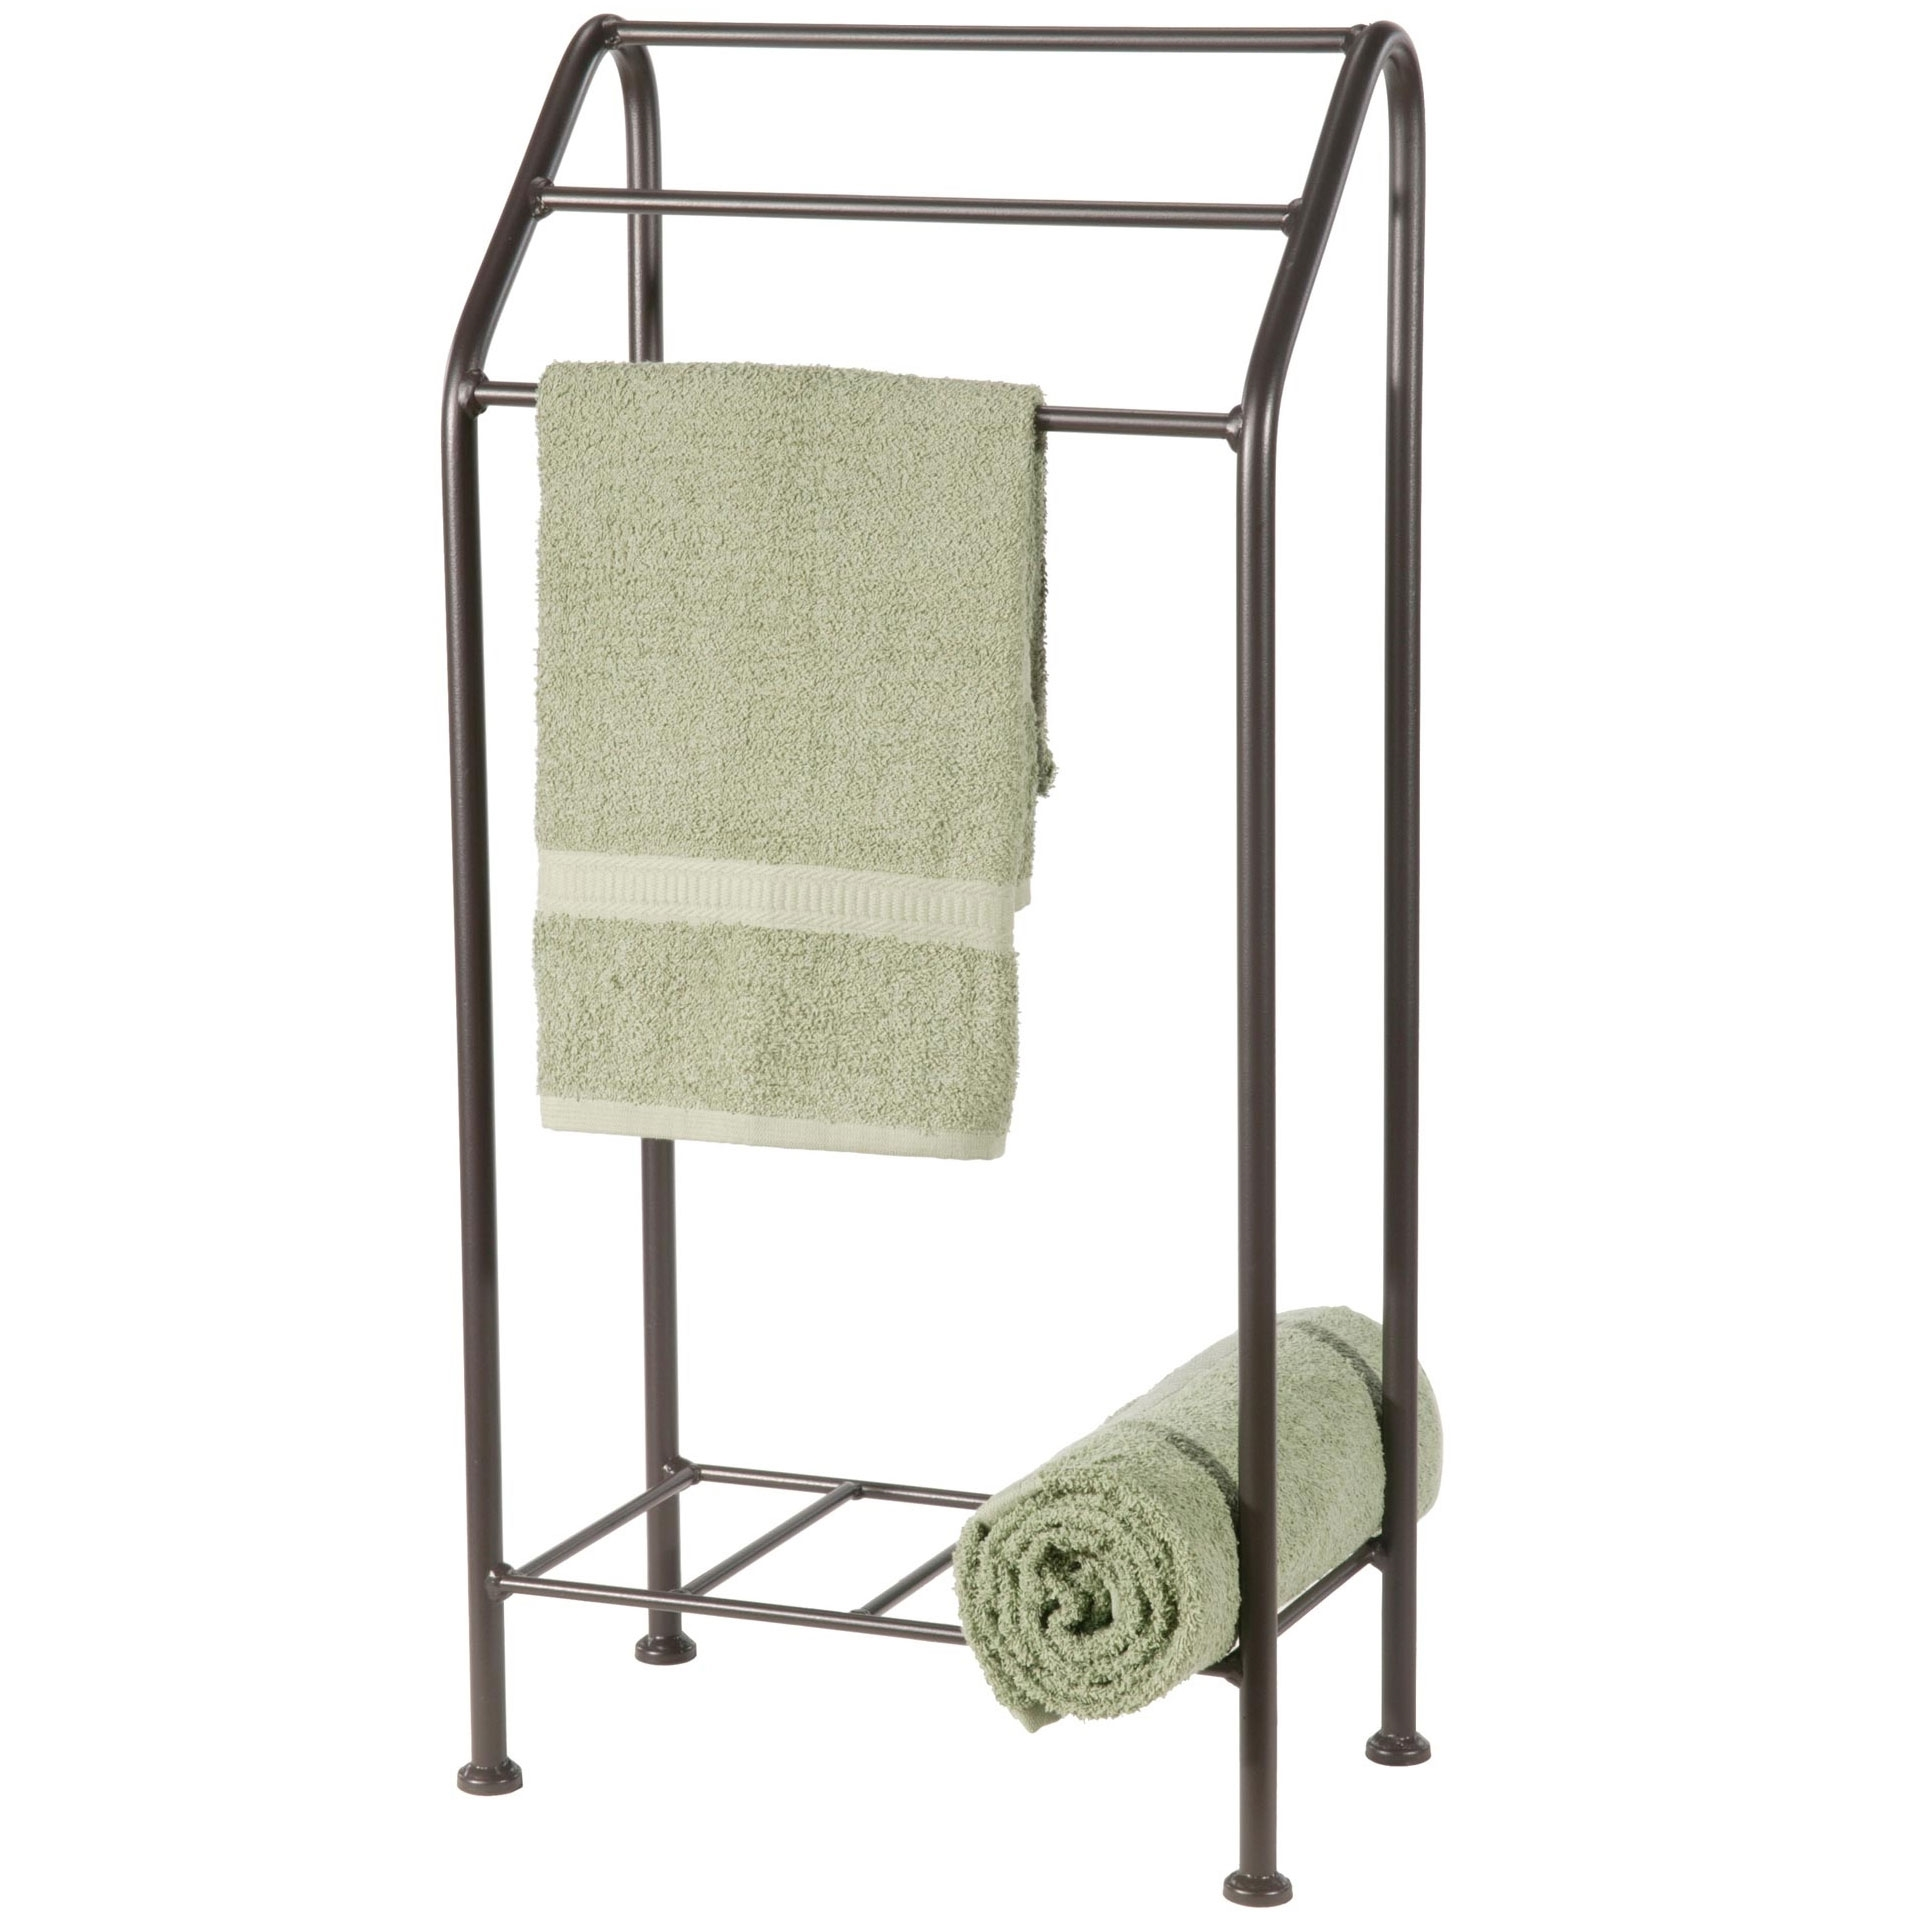 free standing monticello wrought iron towel rack - pictured here is the free standing monticello towel rack with a timelessnatural black finish for